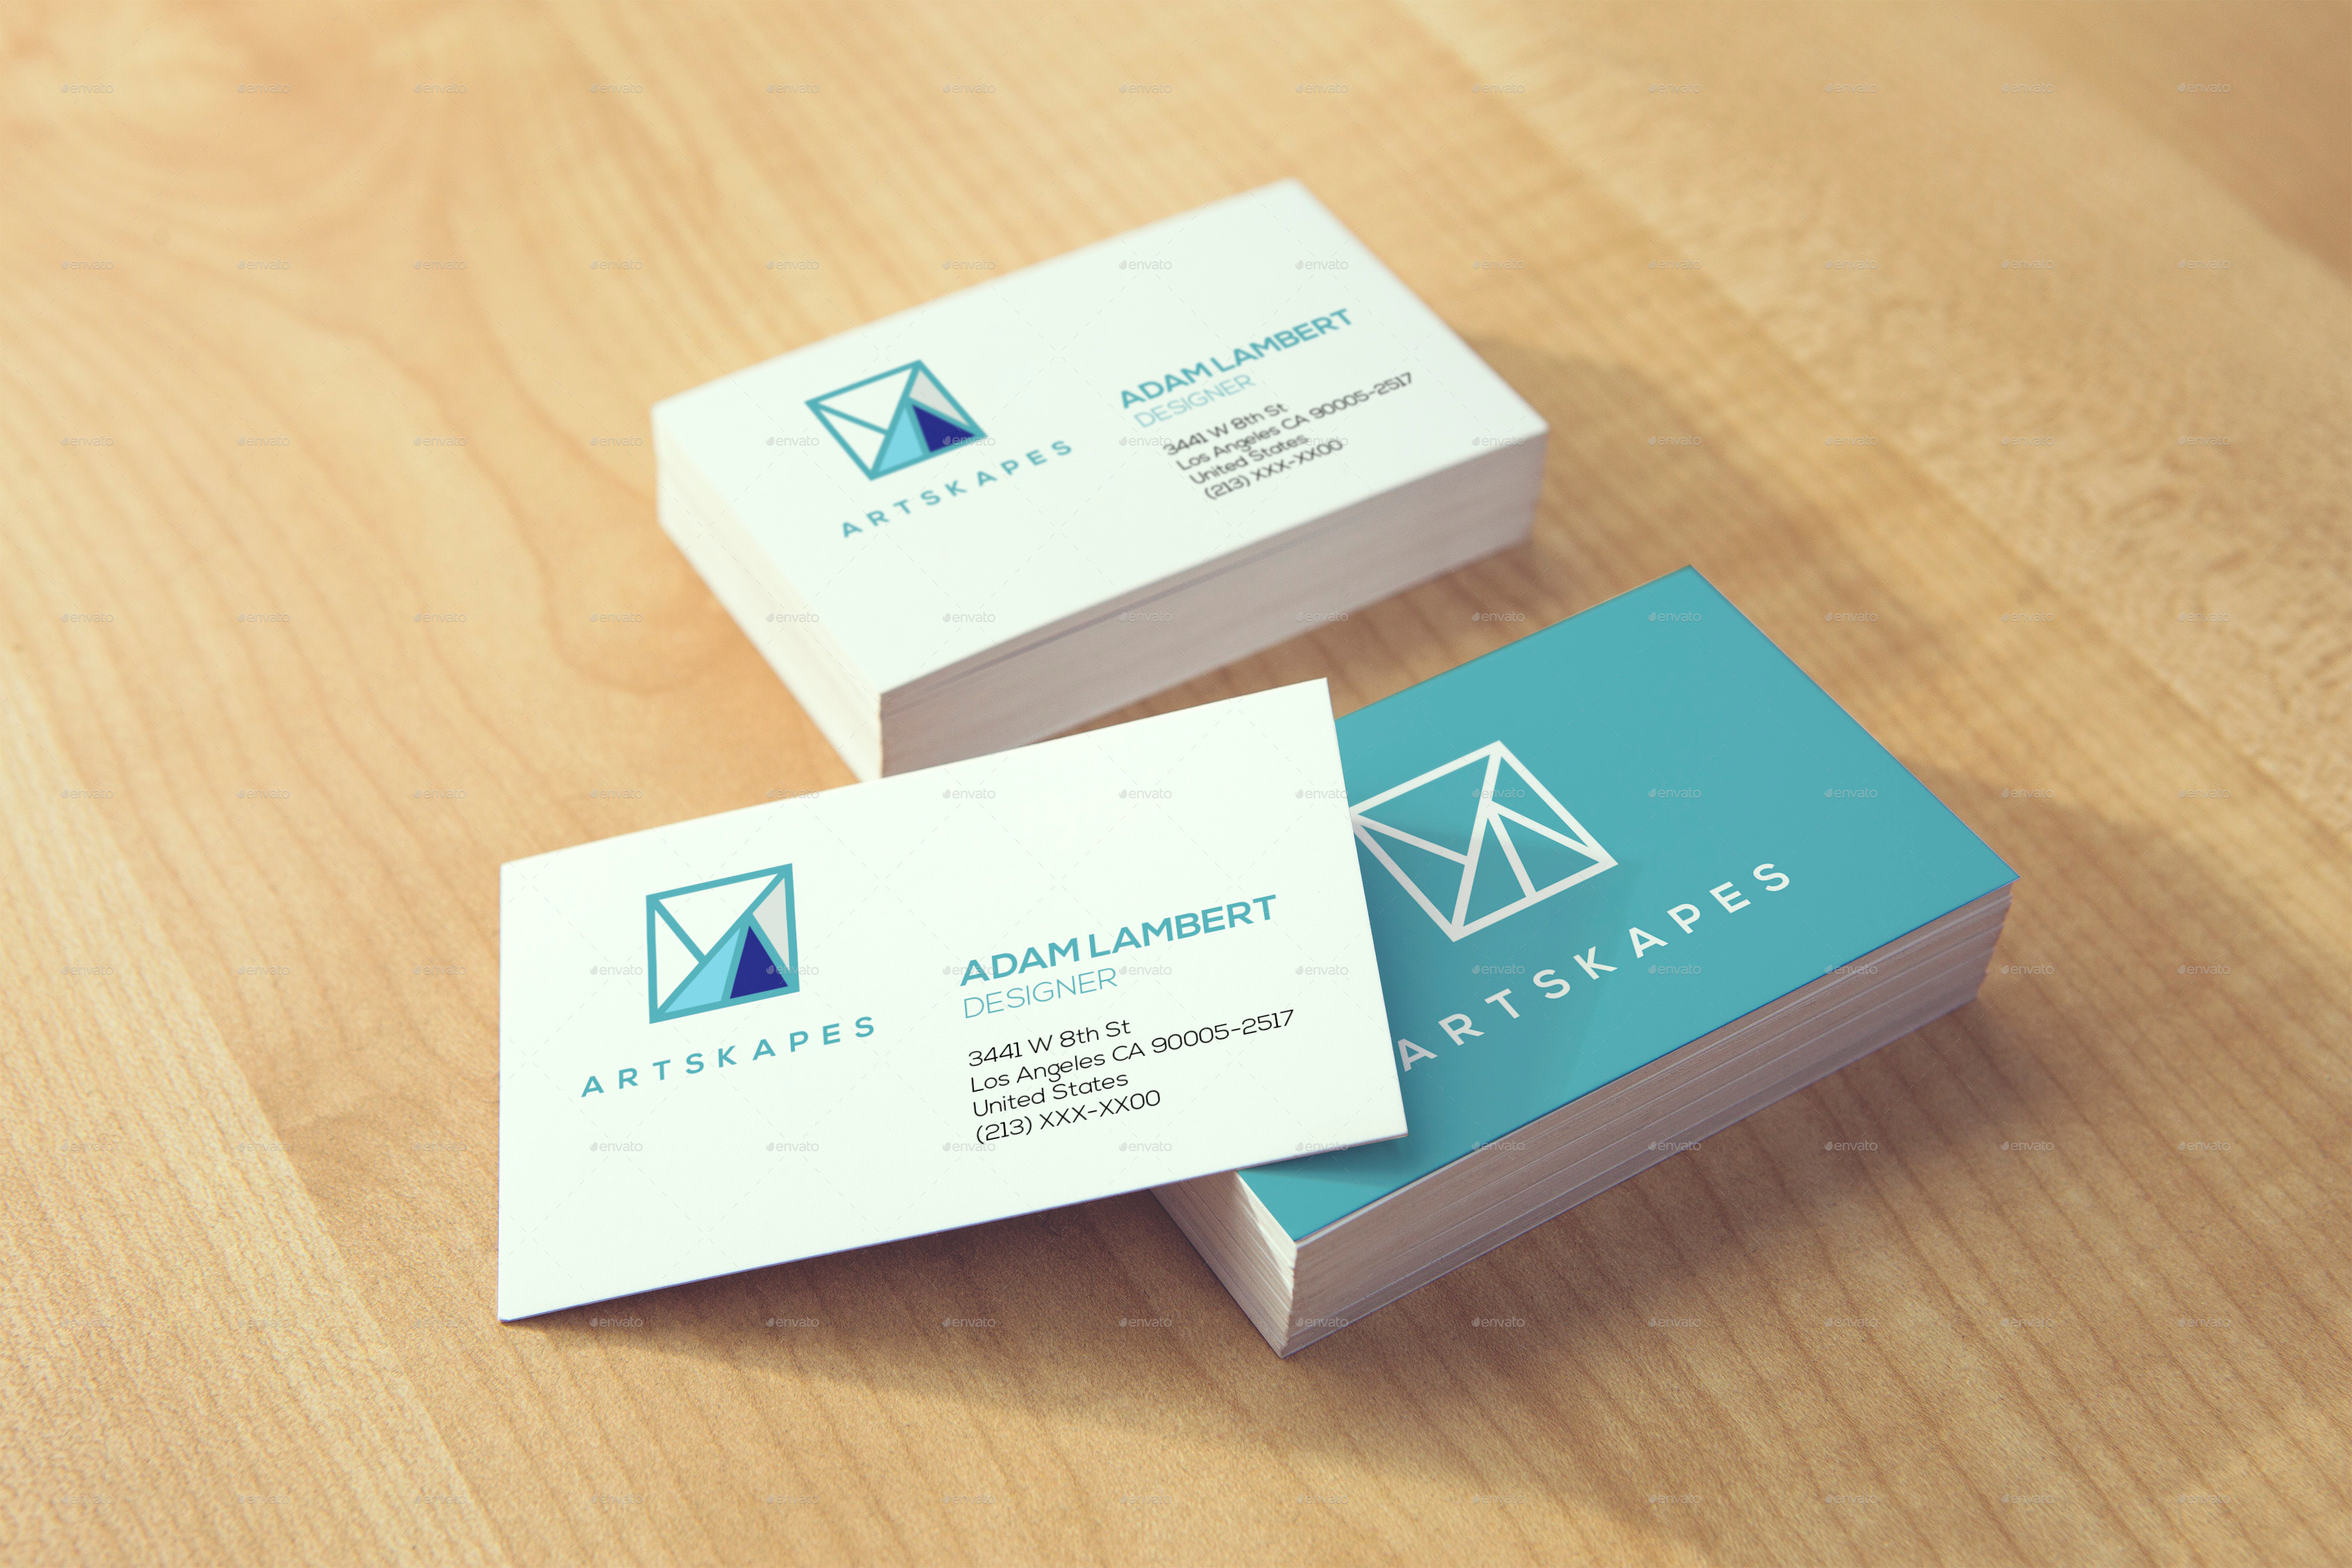 Realistic Business Card Mockups v 2 by Xepeec